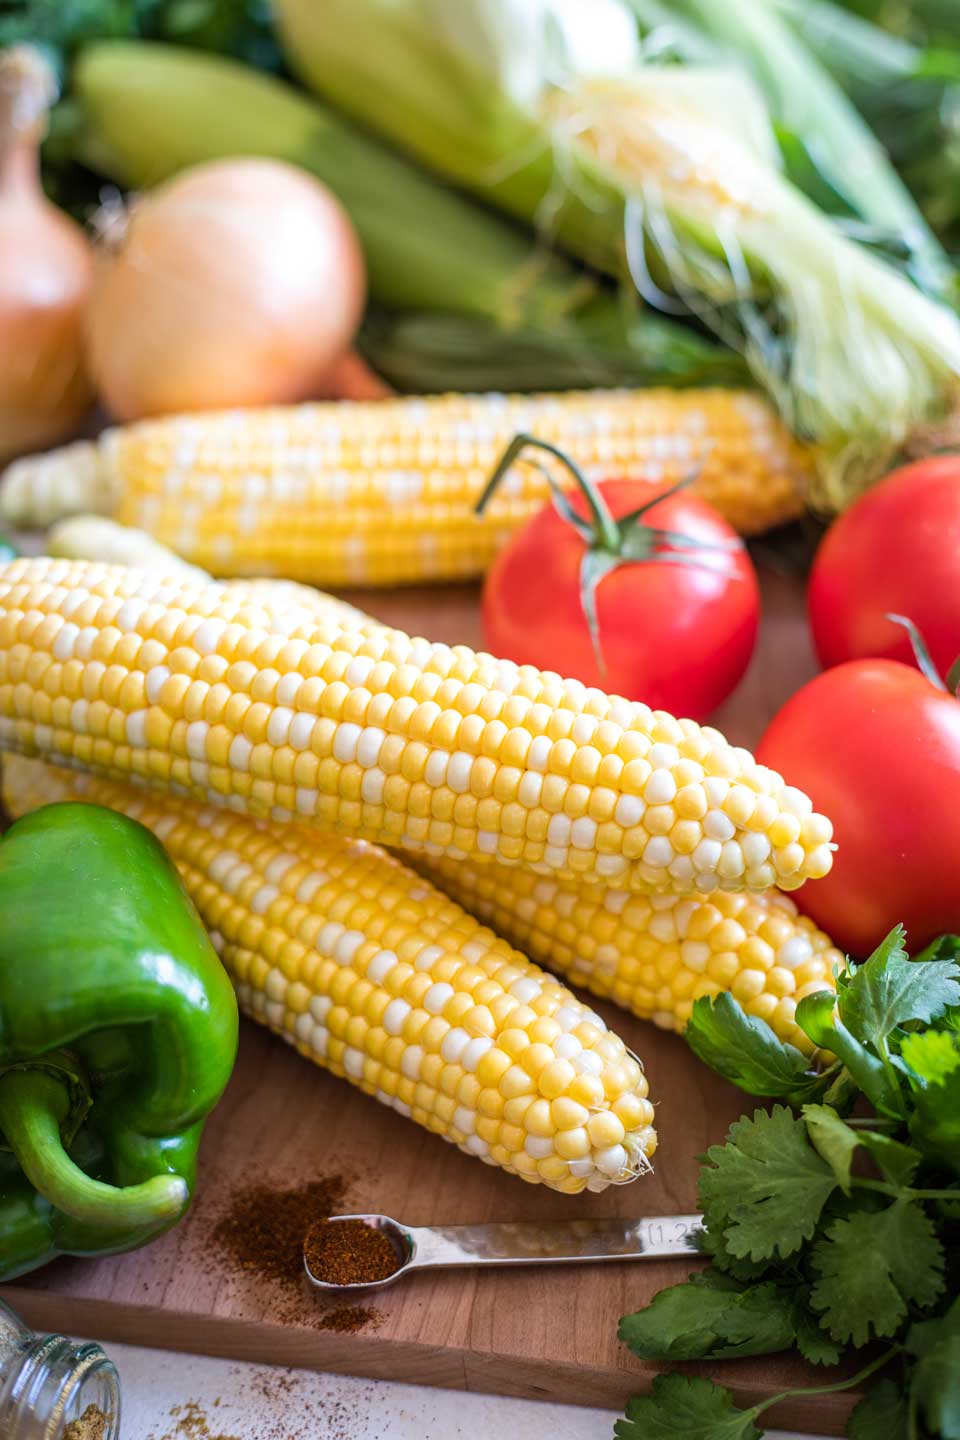 recipe ingredients, uncut on a cutting board - whole ears of fresh sweet corn, tomatoes, a green pepper, onions, and cilantro